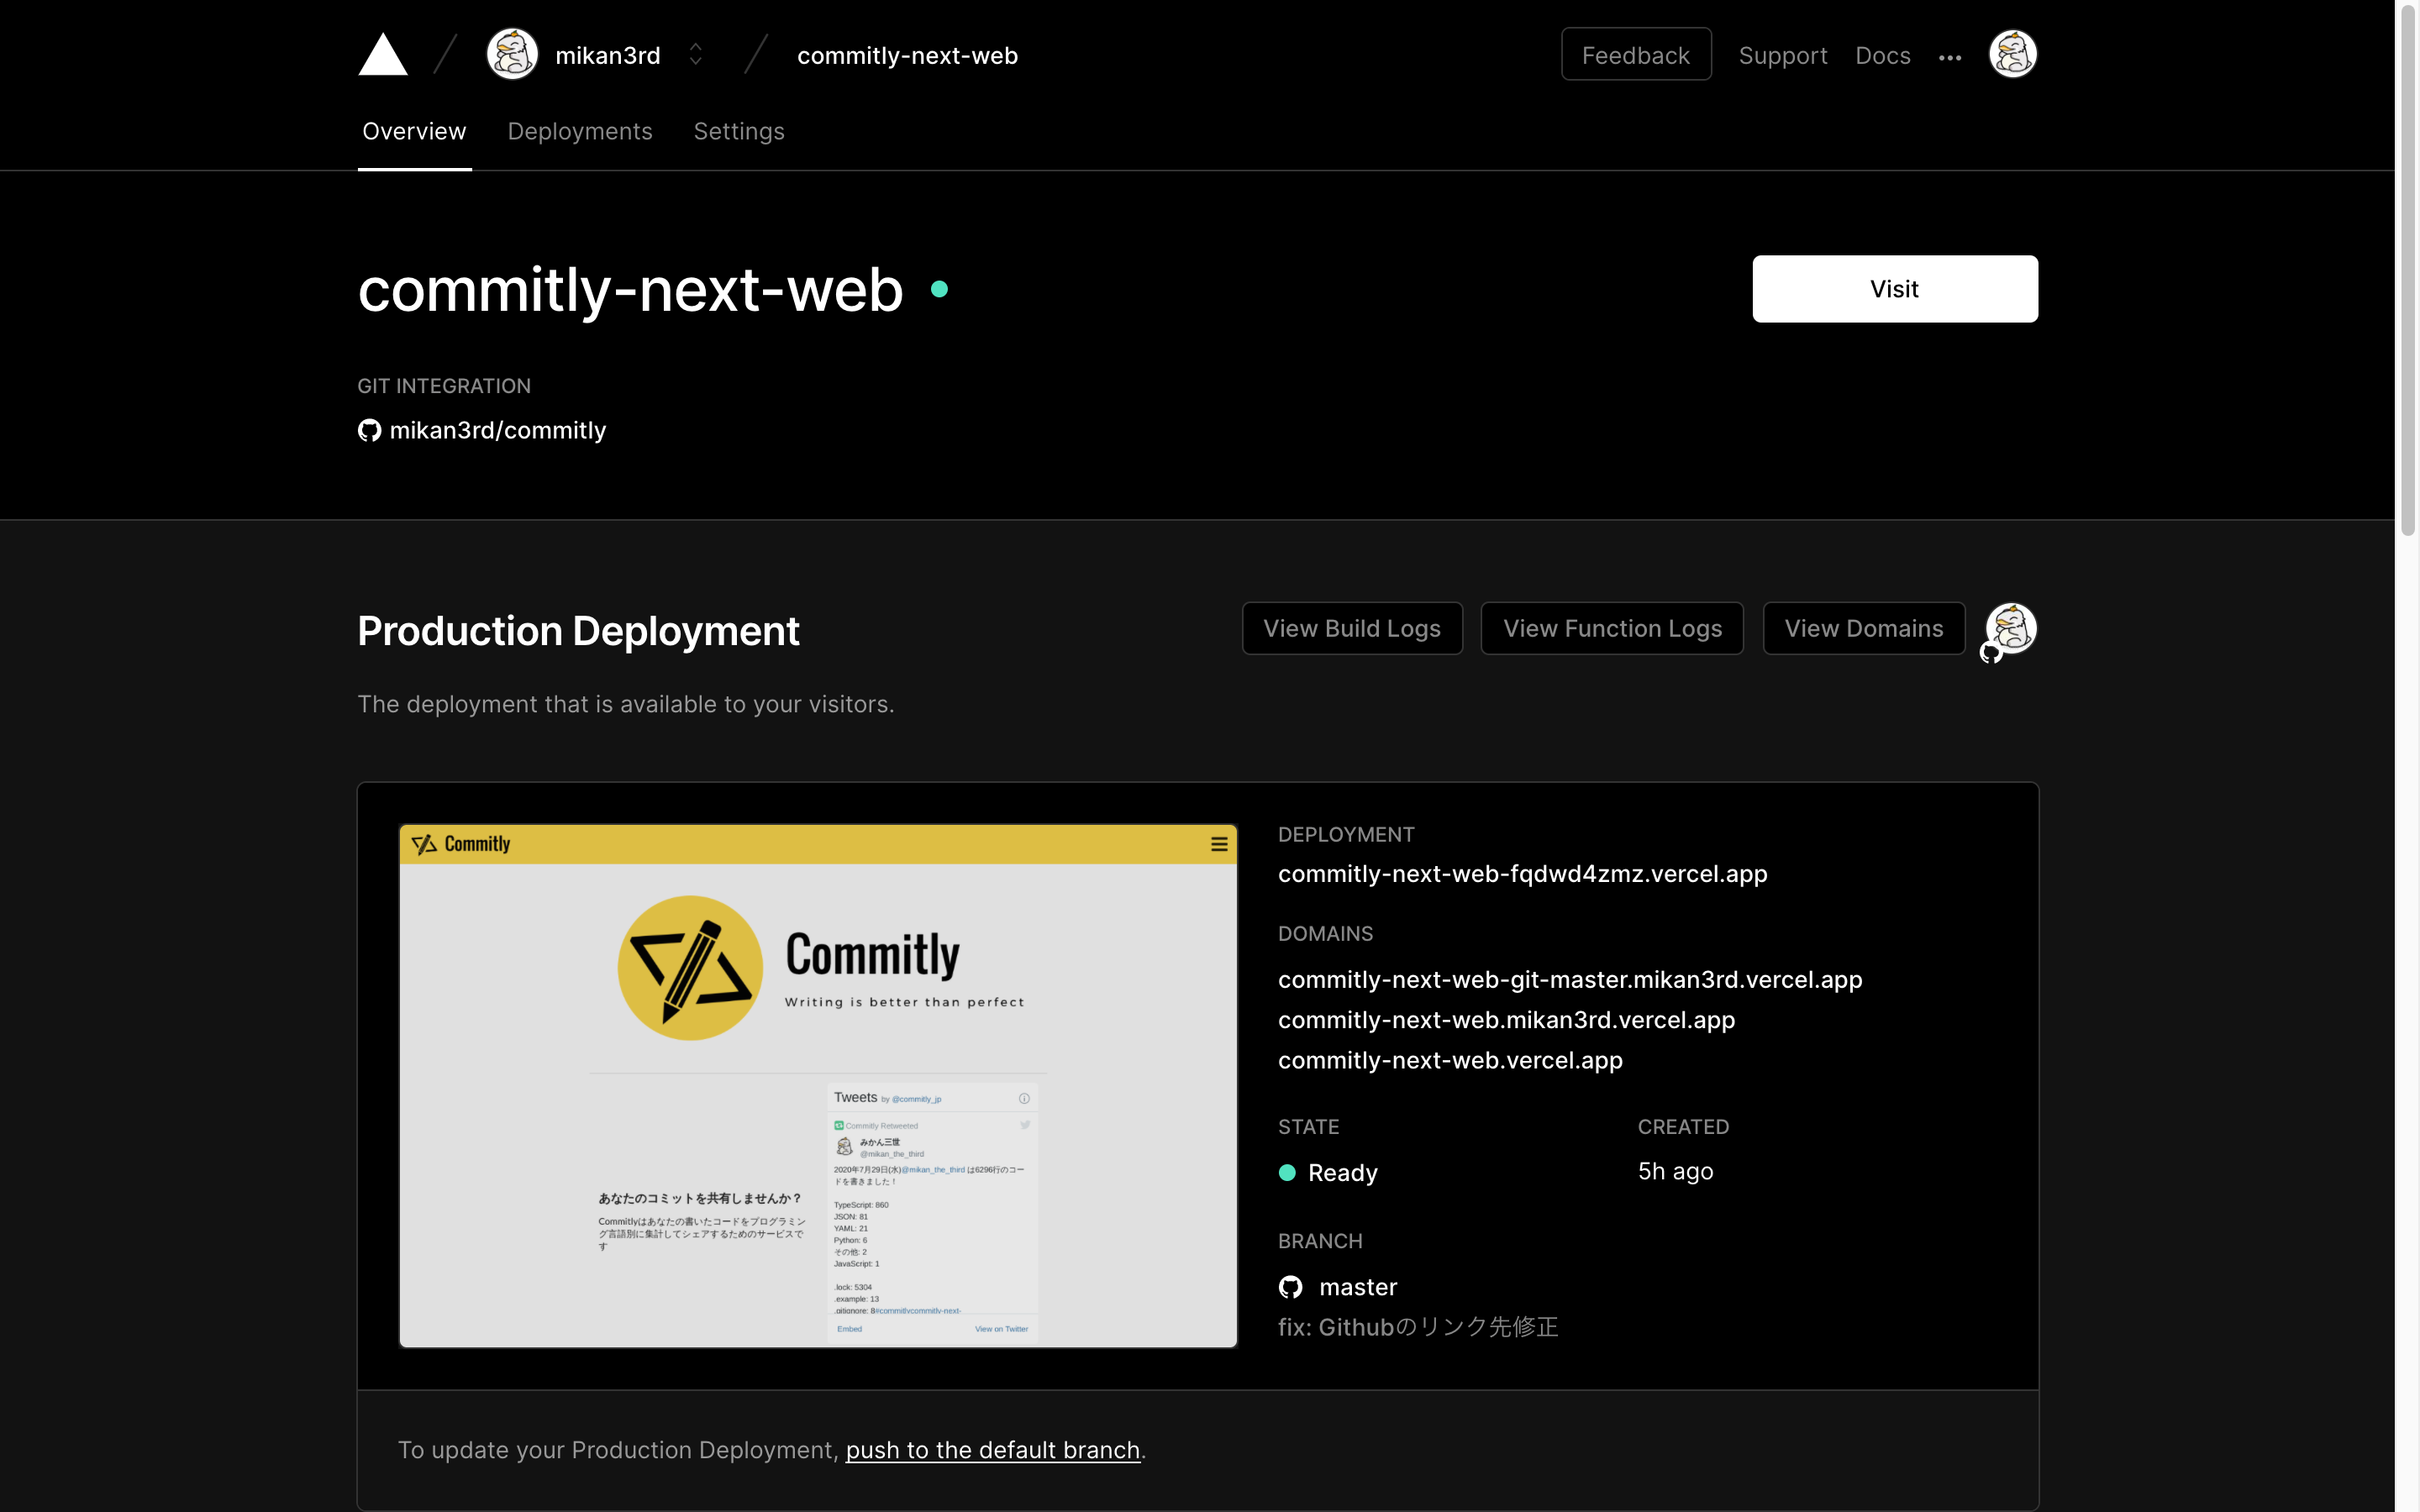 vercel.com_mikan3rd_commitly-next-web(Laptop with HiDPI screen).png